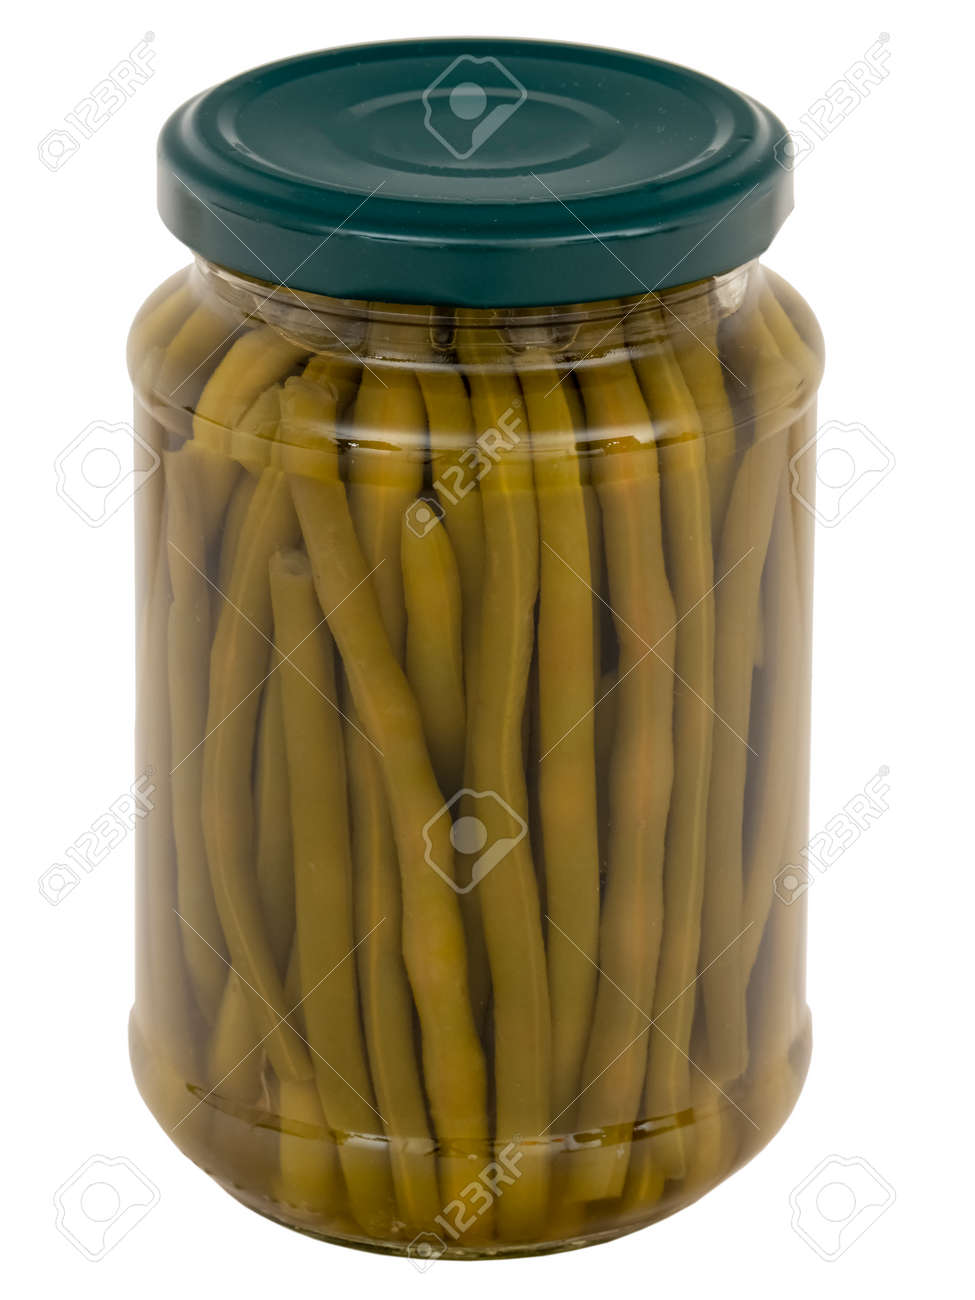 A jar of green beans isolated on white background - 169668316